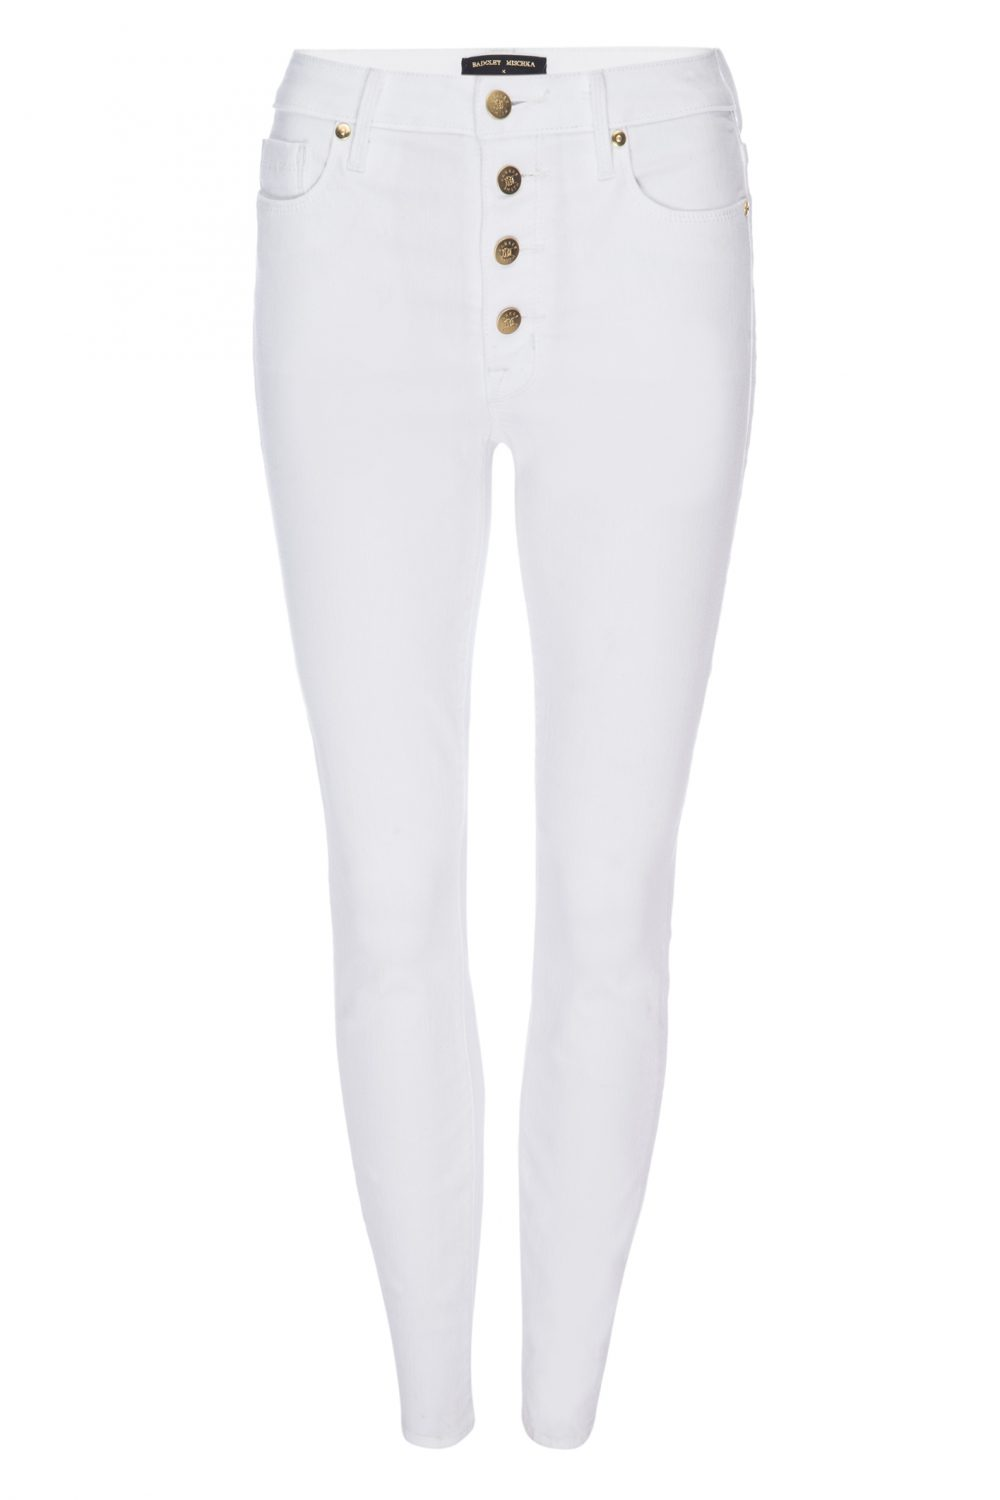 BUTTON-FLY BOMBSHELL IN BLANC